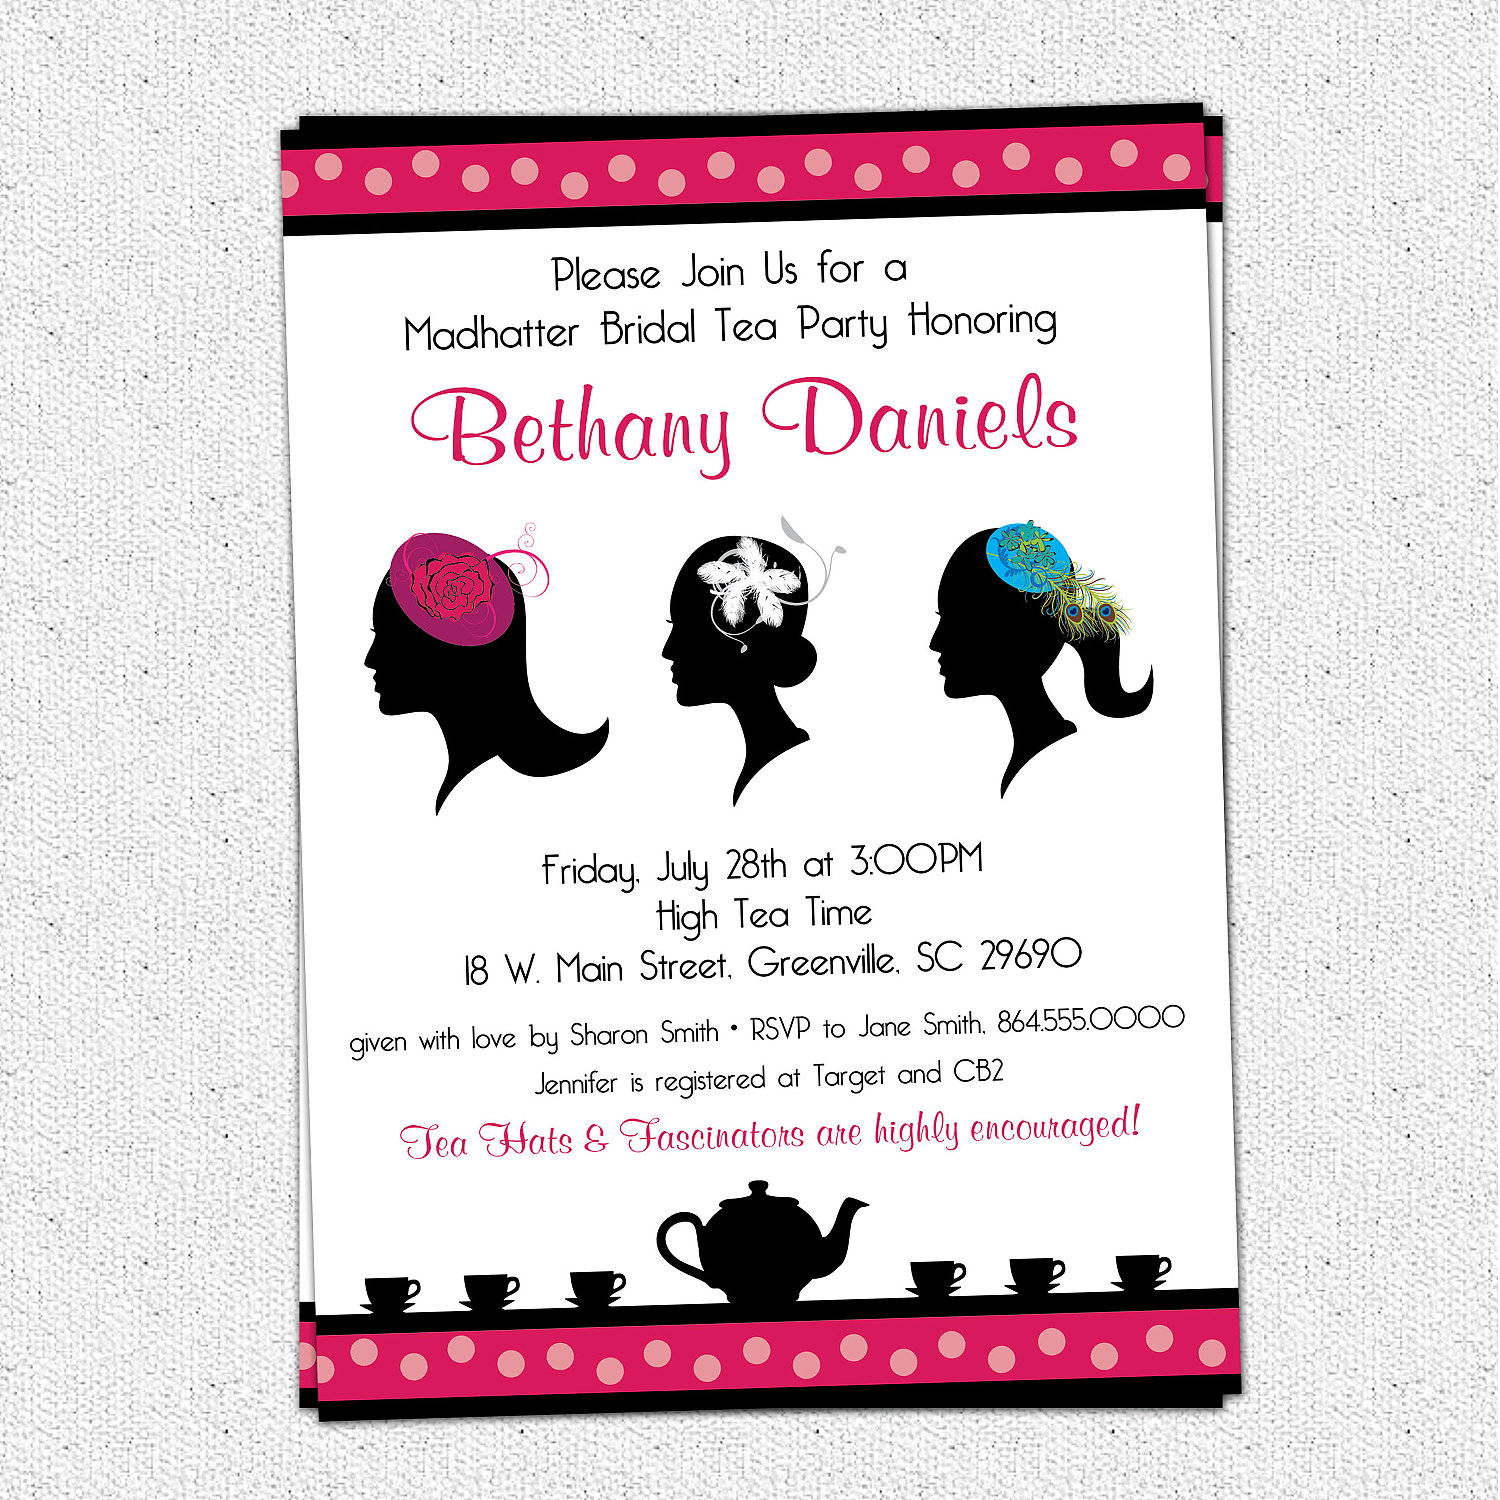 Madhatter Mad Hatter Tea Party Invitations Fascinator, Hats ...